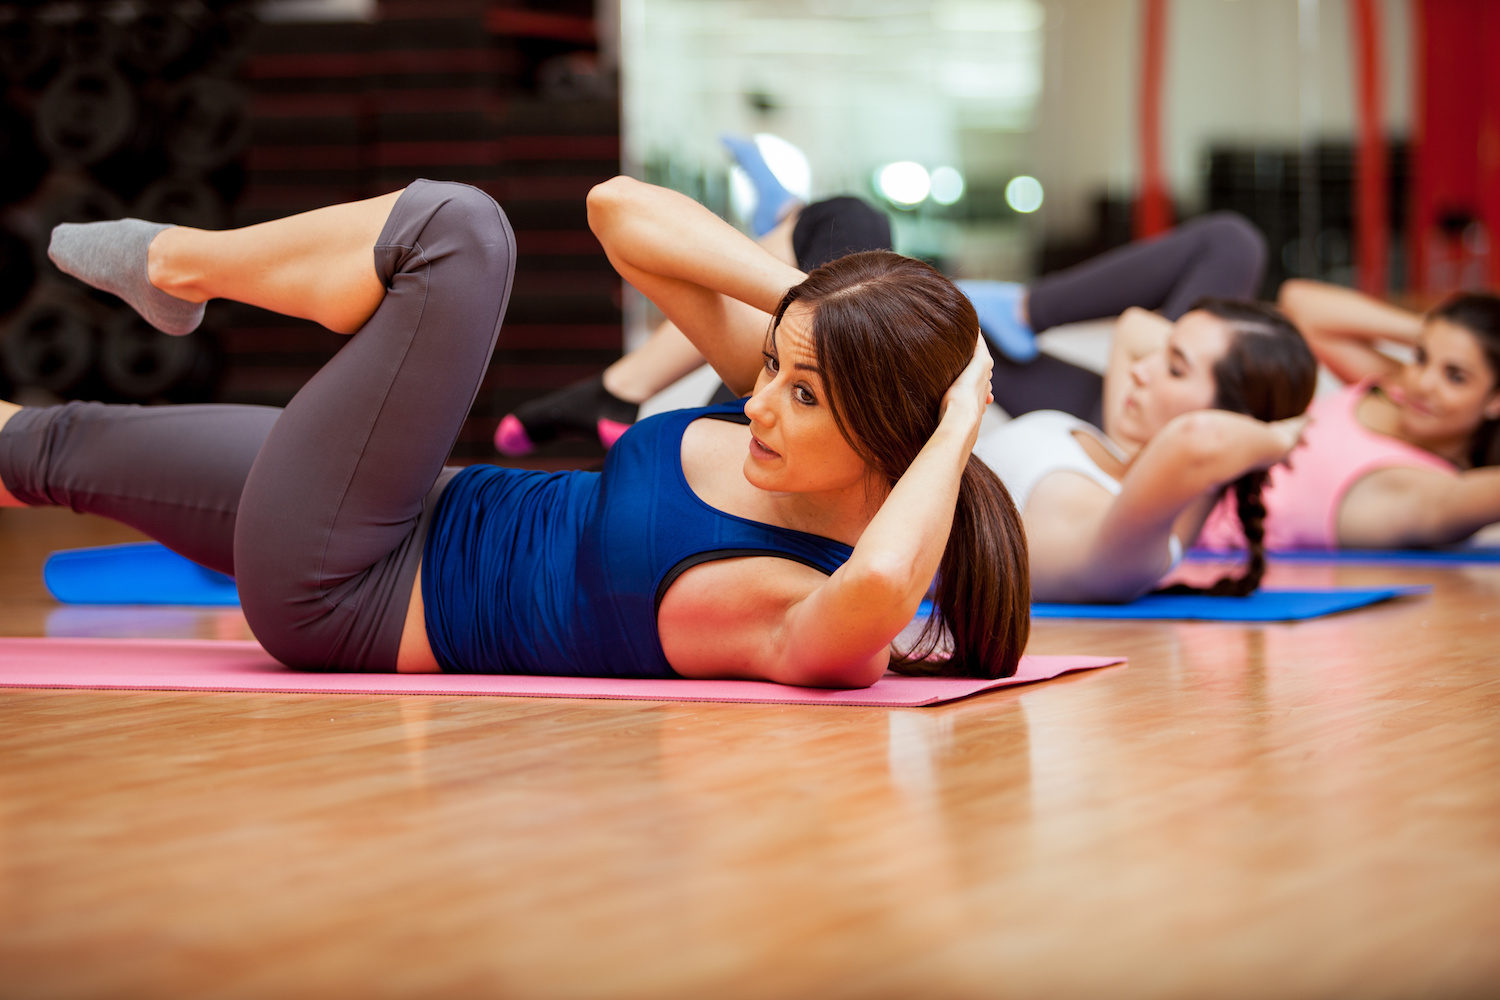 Exercise classes at Infinity Fitness in Falmouth, MA